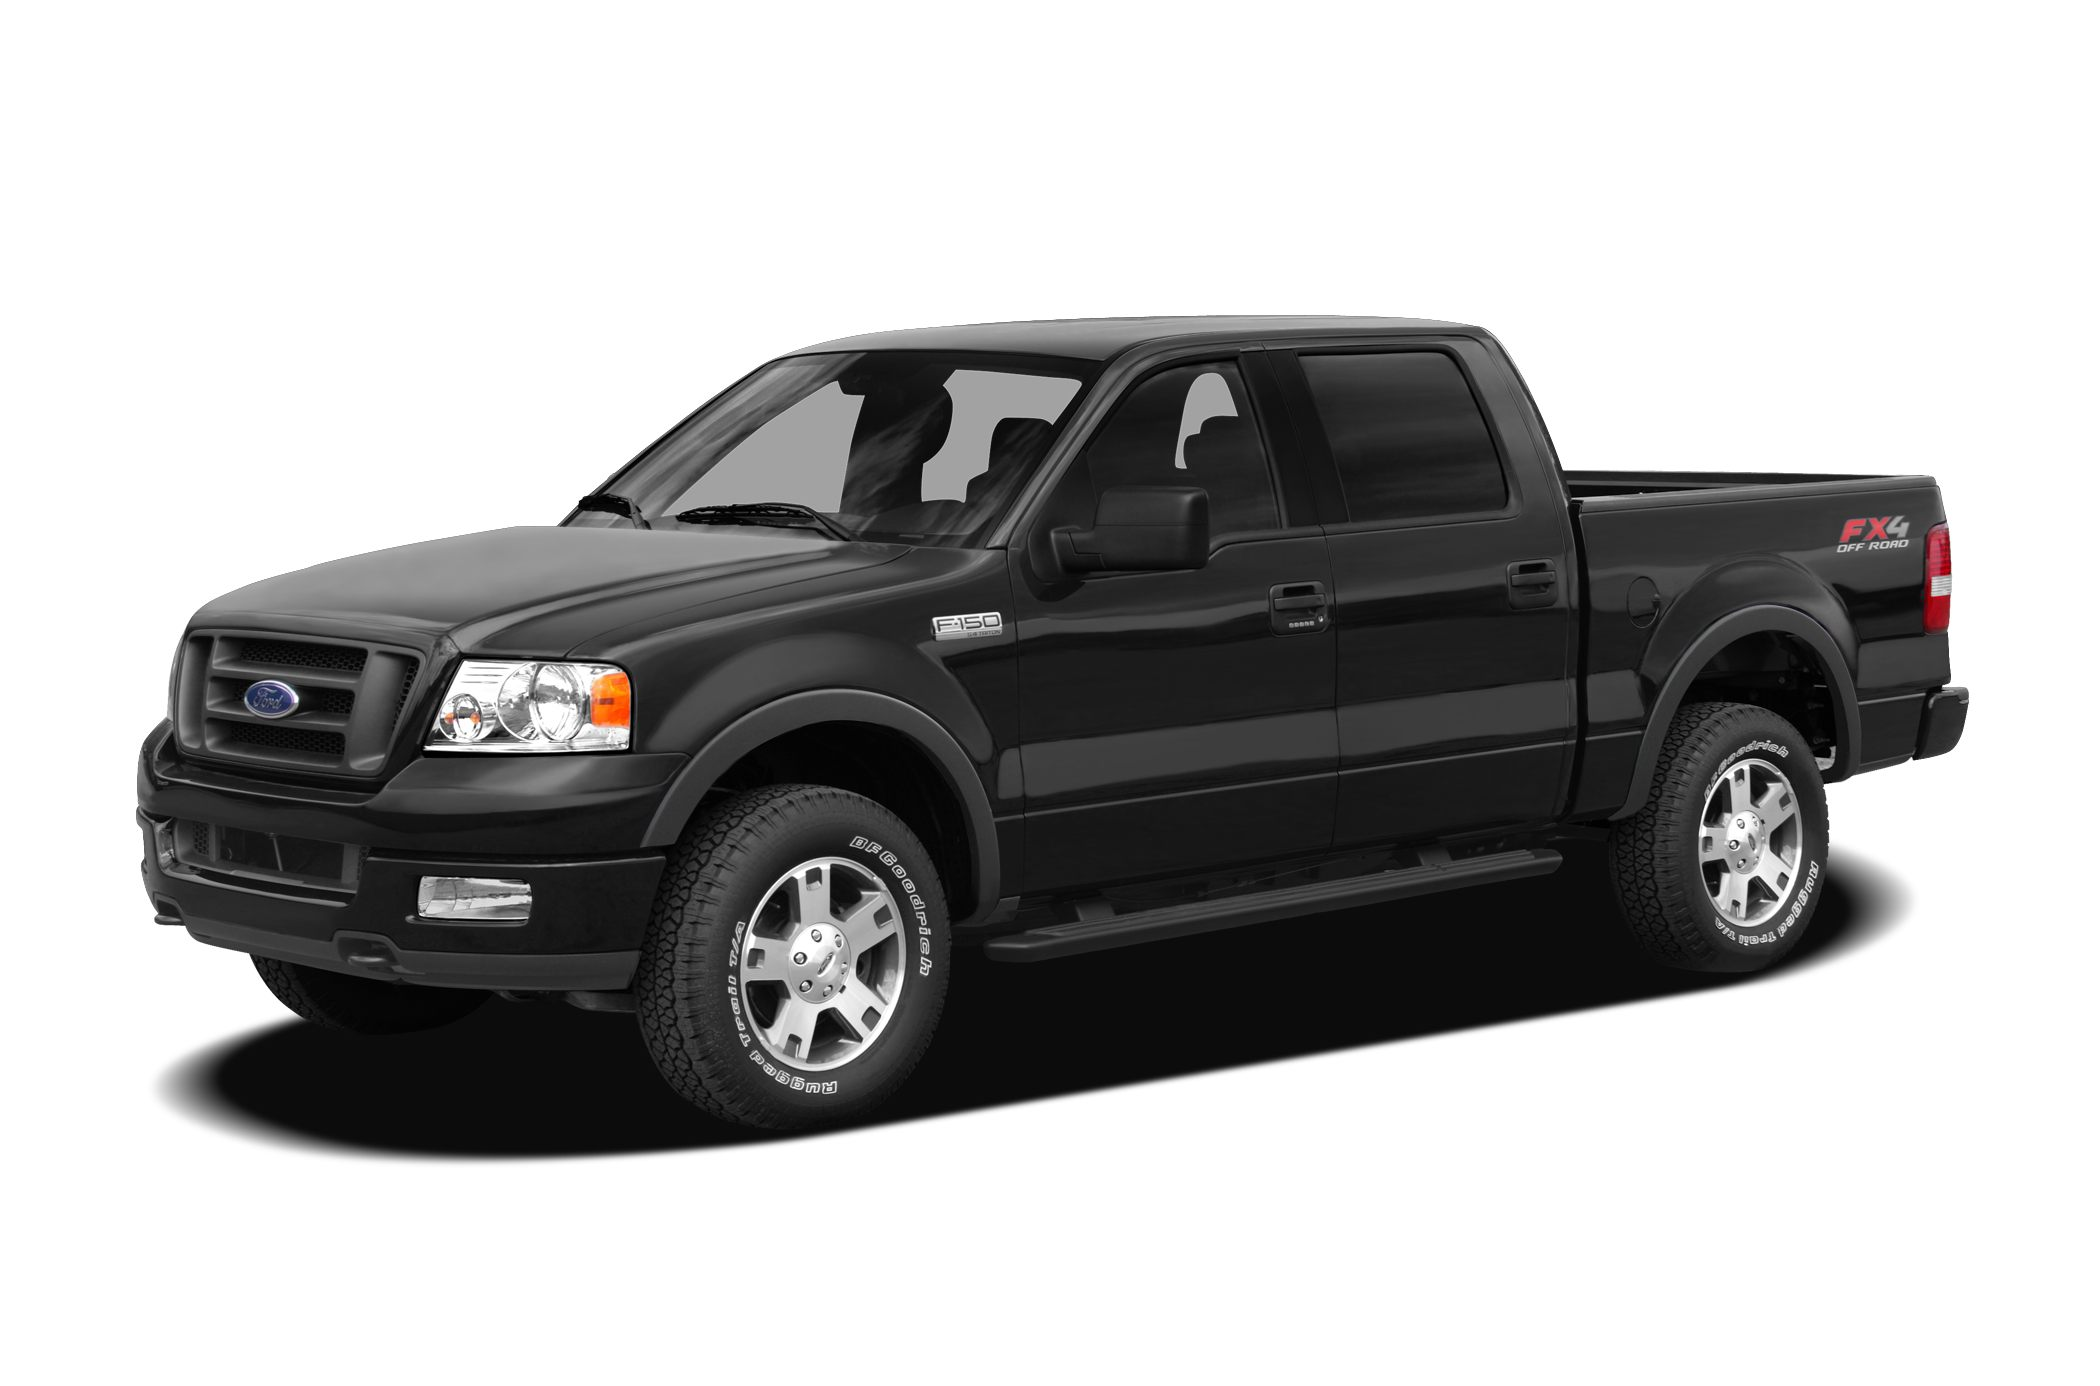 USB70FOT11GB0101 Cool Review About 2004 ford F150 Extended Cab with Captivating Gallery Cars Review